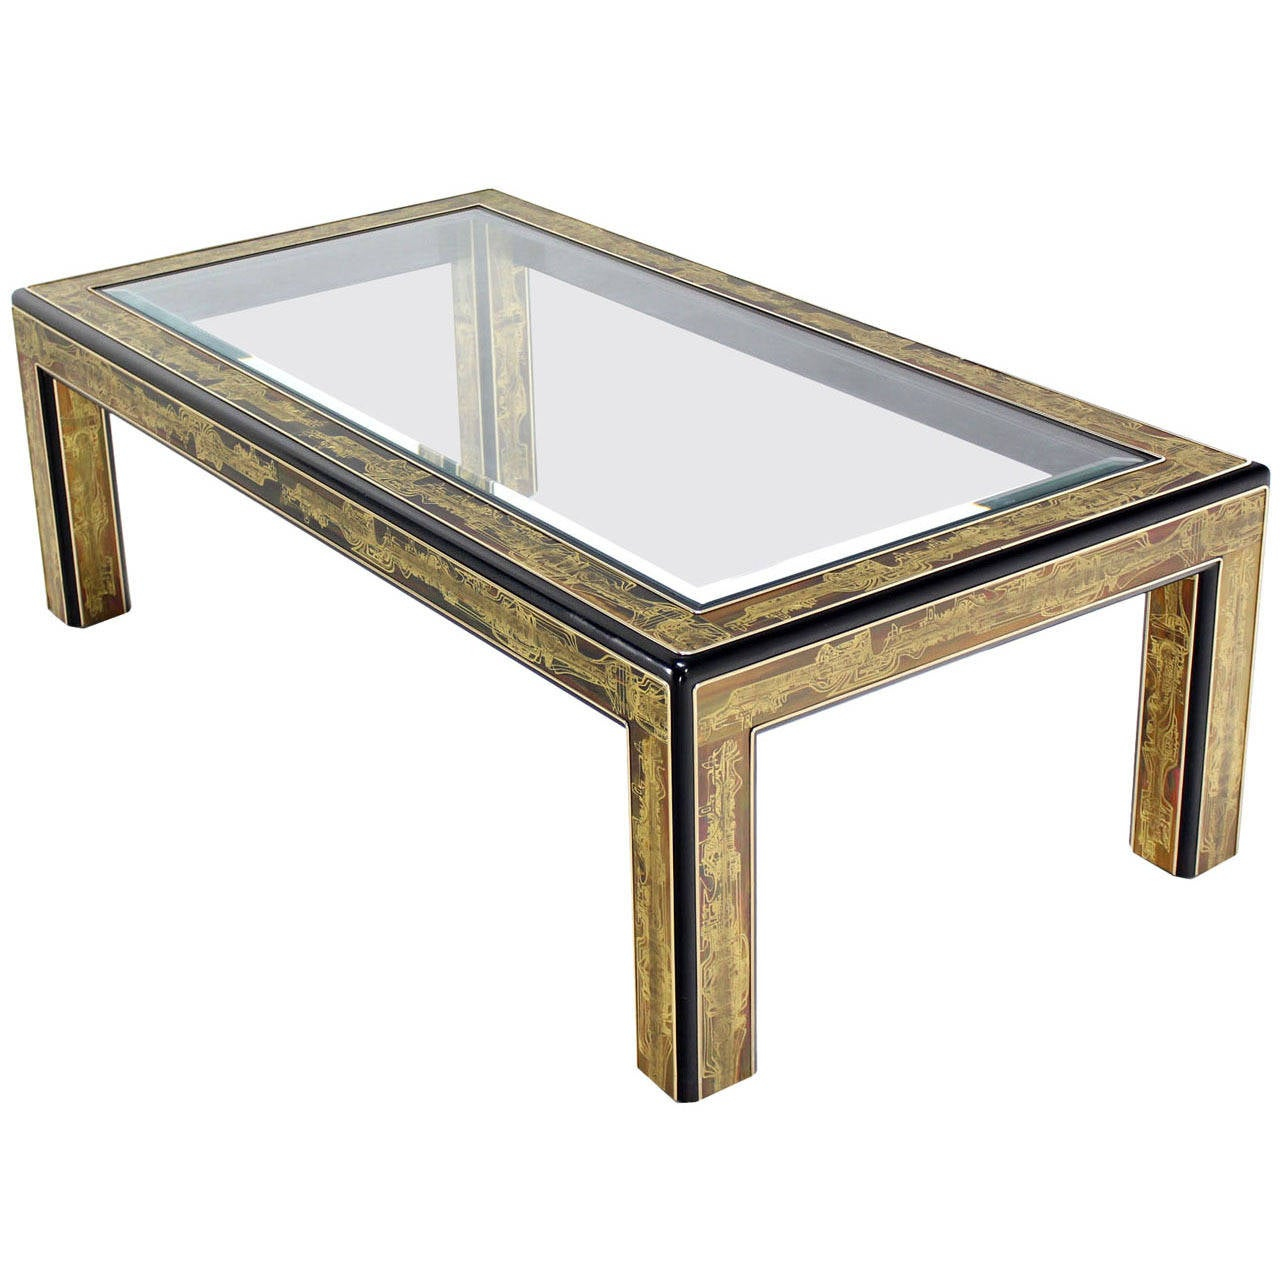 Rectangular glass top brass and wood base coffee table by mastercraft at 1stdibs Glass coffee table base